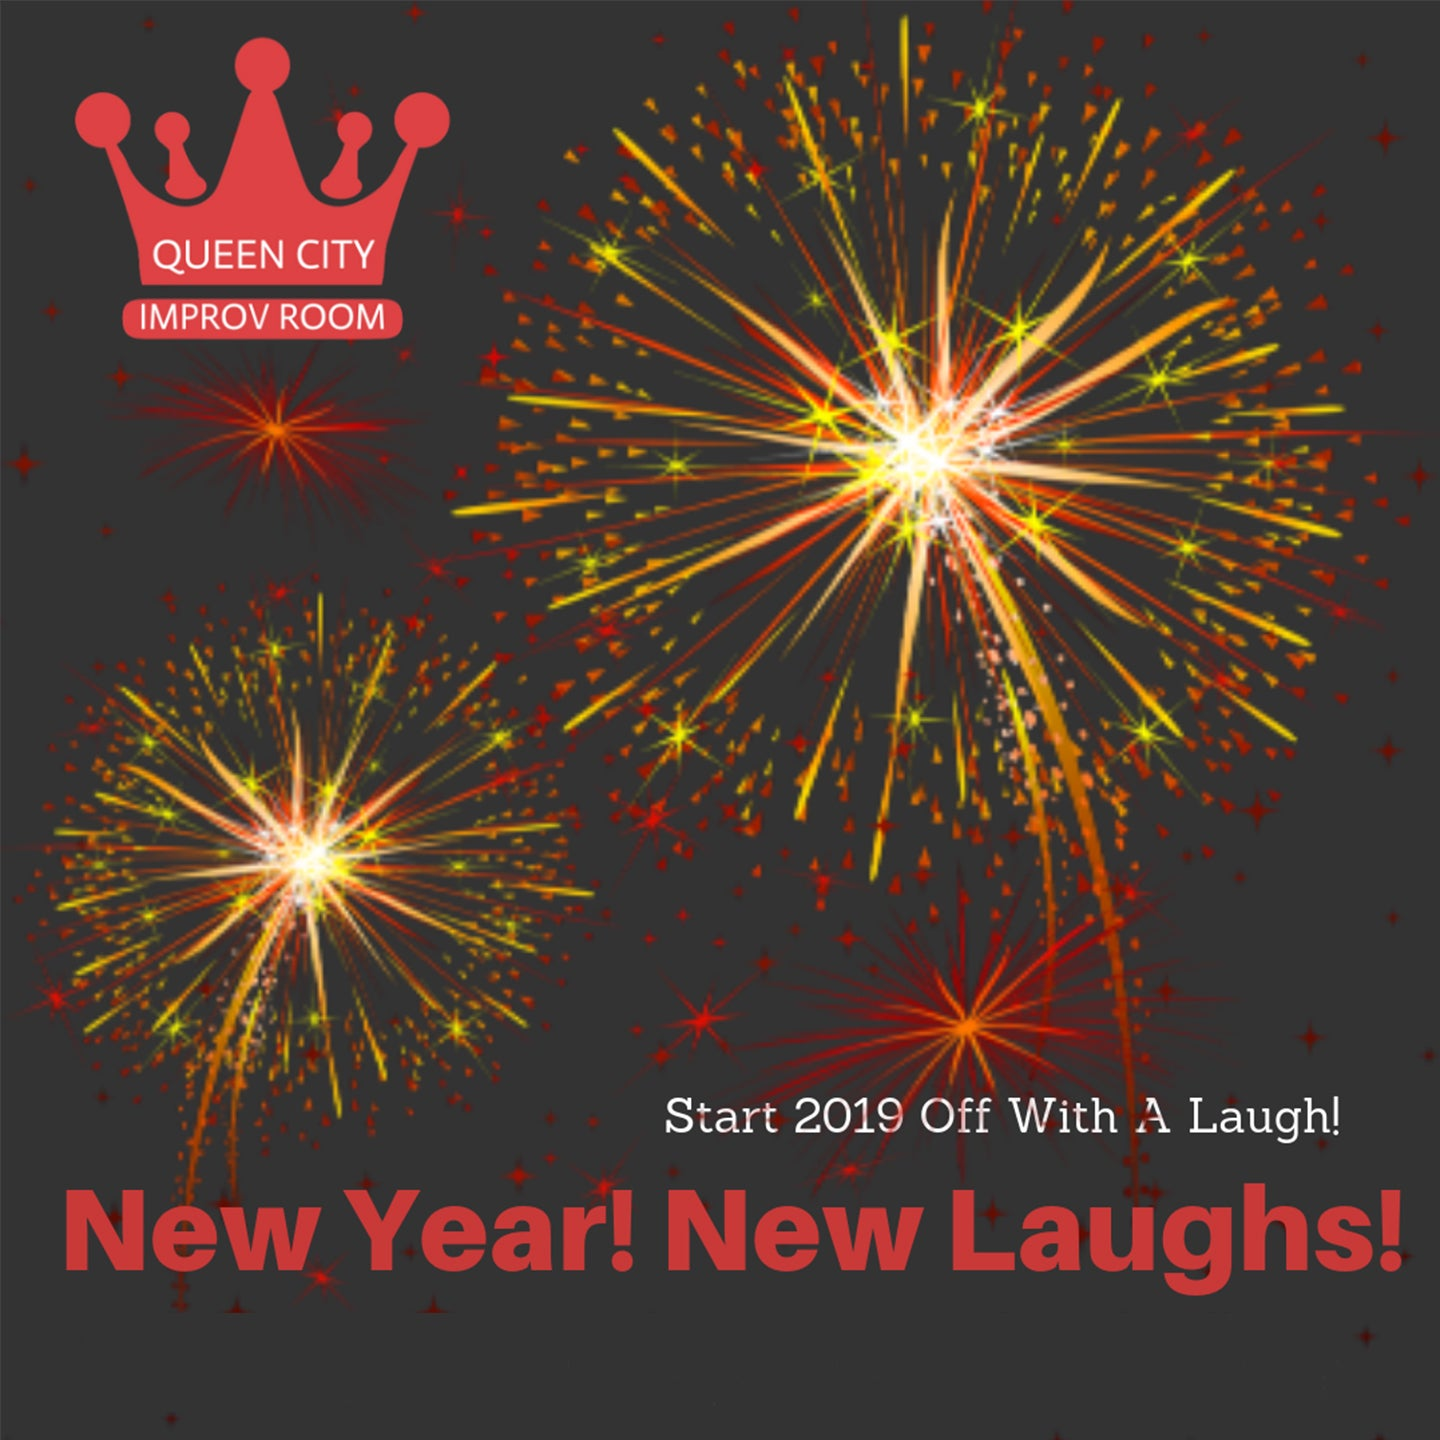 Queen City Improv Room: New Year, New Laughs!